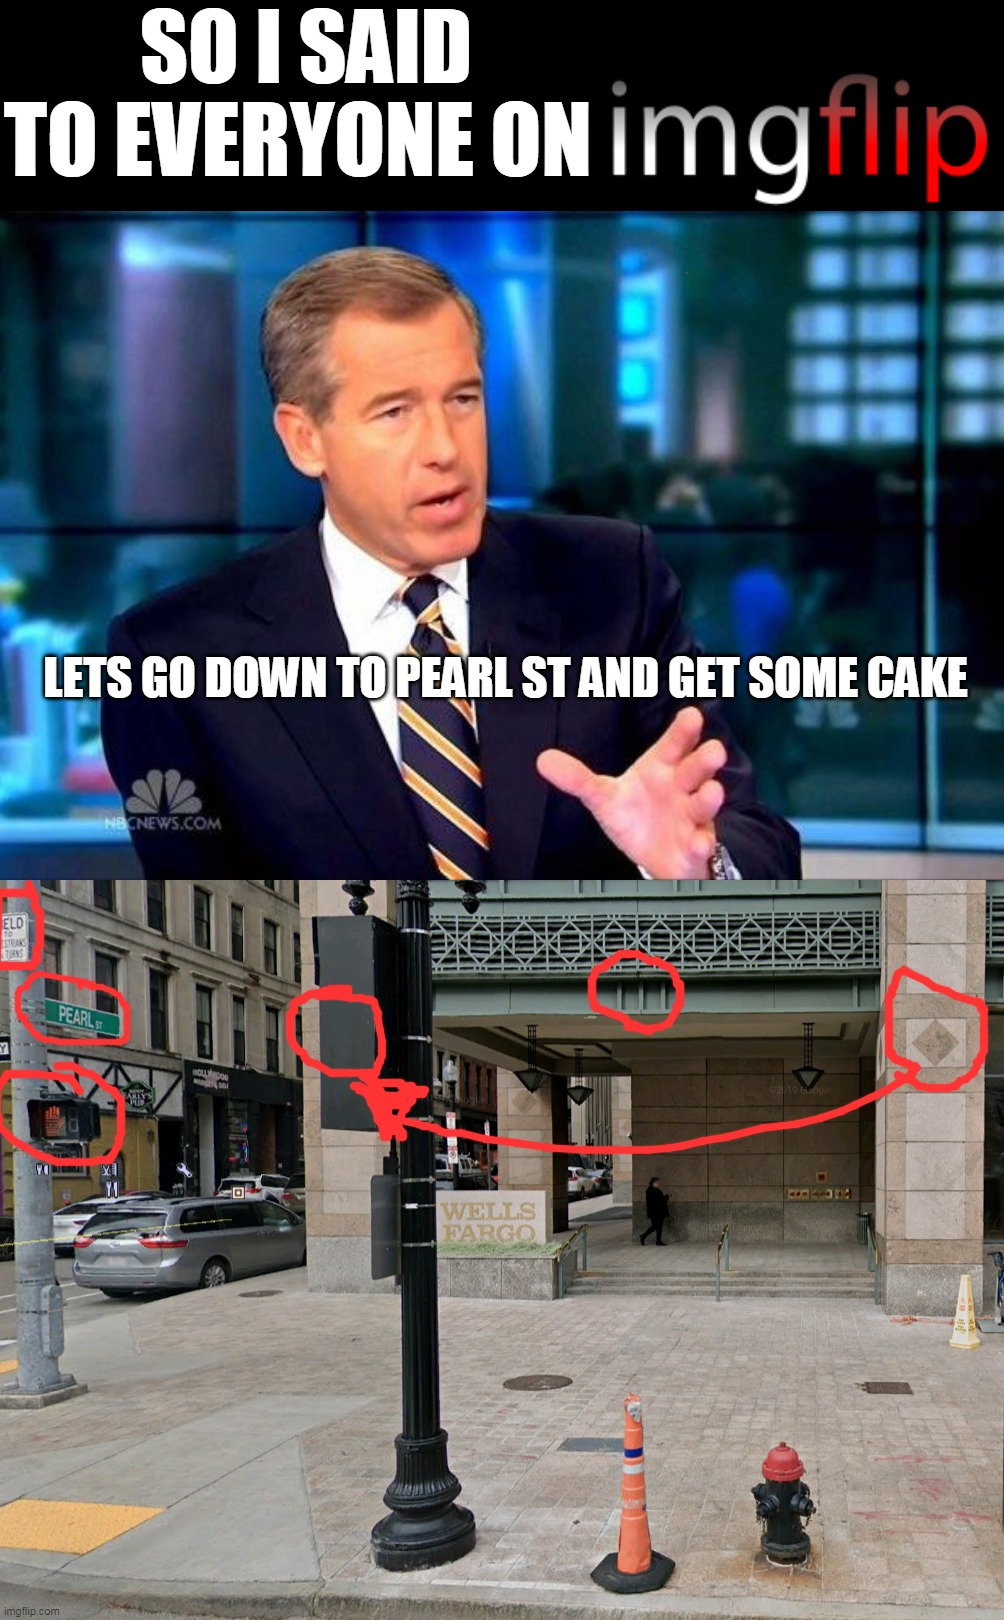 SO I SAID TO EVERYONE ON LETS GO DOWN TO PEARL ST AND GET SOME CAKE | image tagged in memes,brian williams was there 2 | made w/ Imgflip meme maker